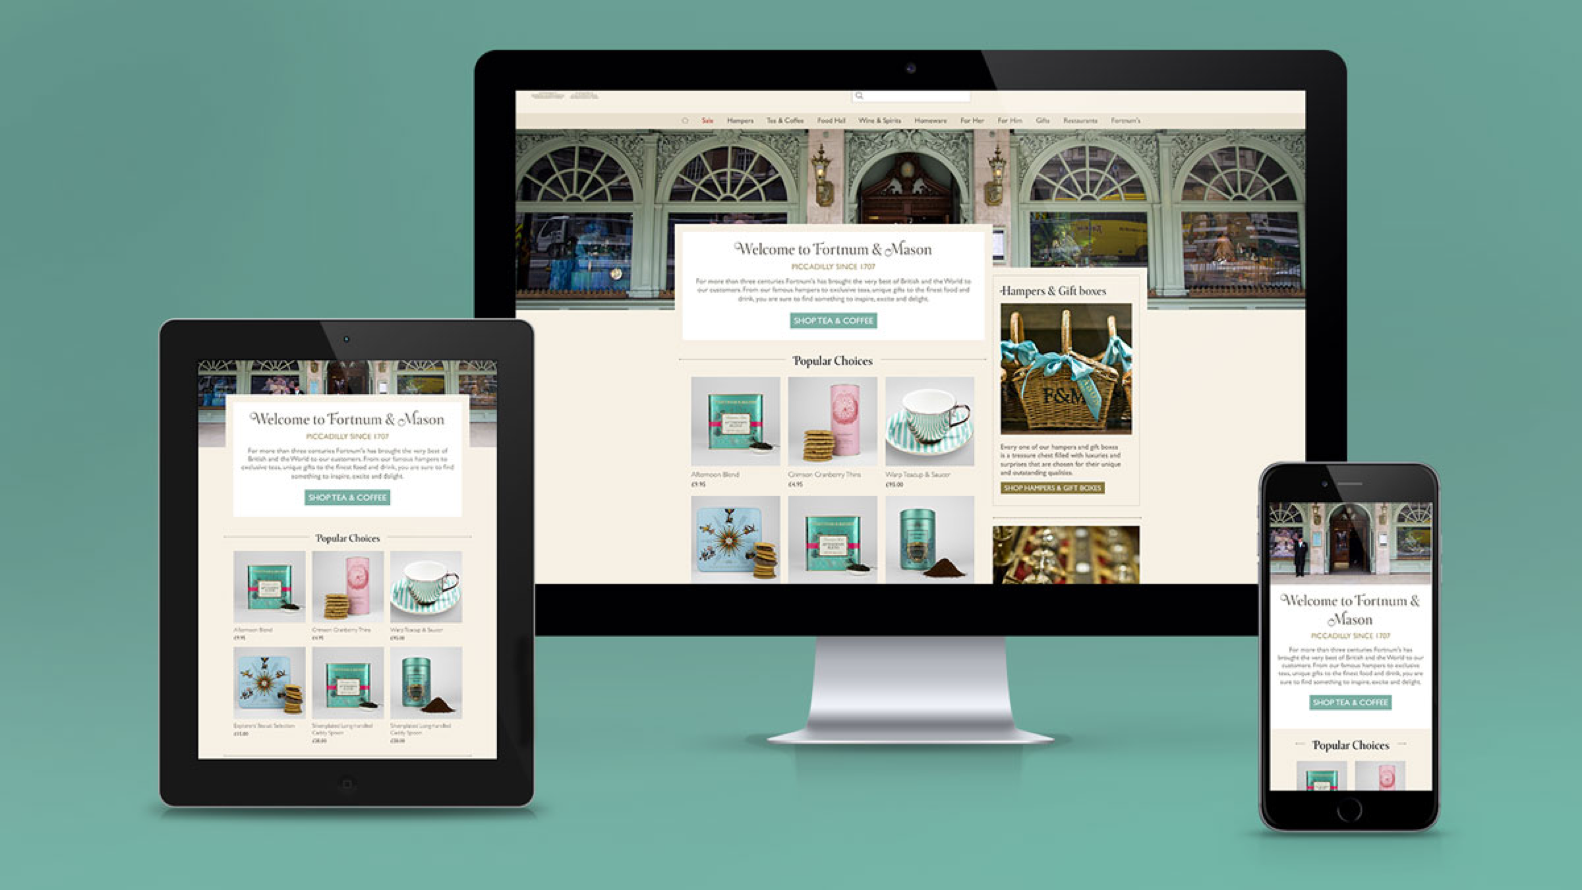 Fortnum & Mason website on desktop, tablet and mobile devices